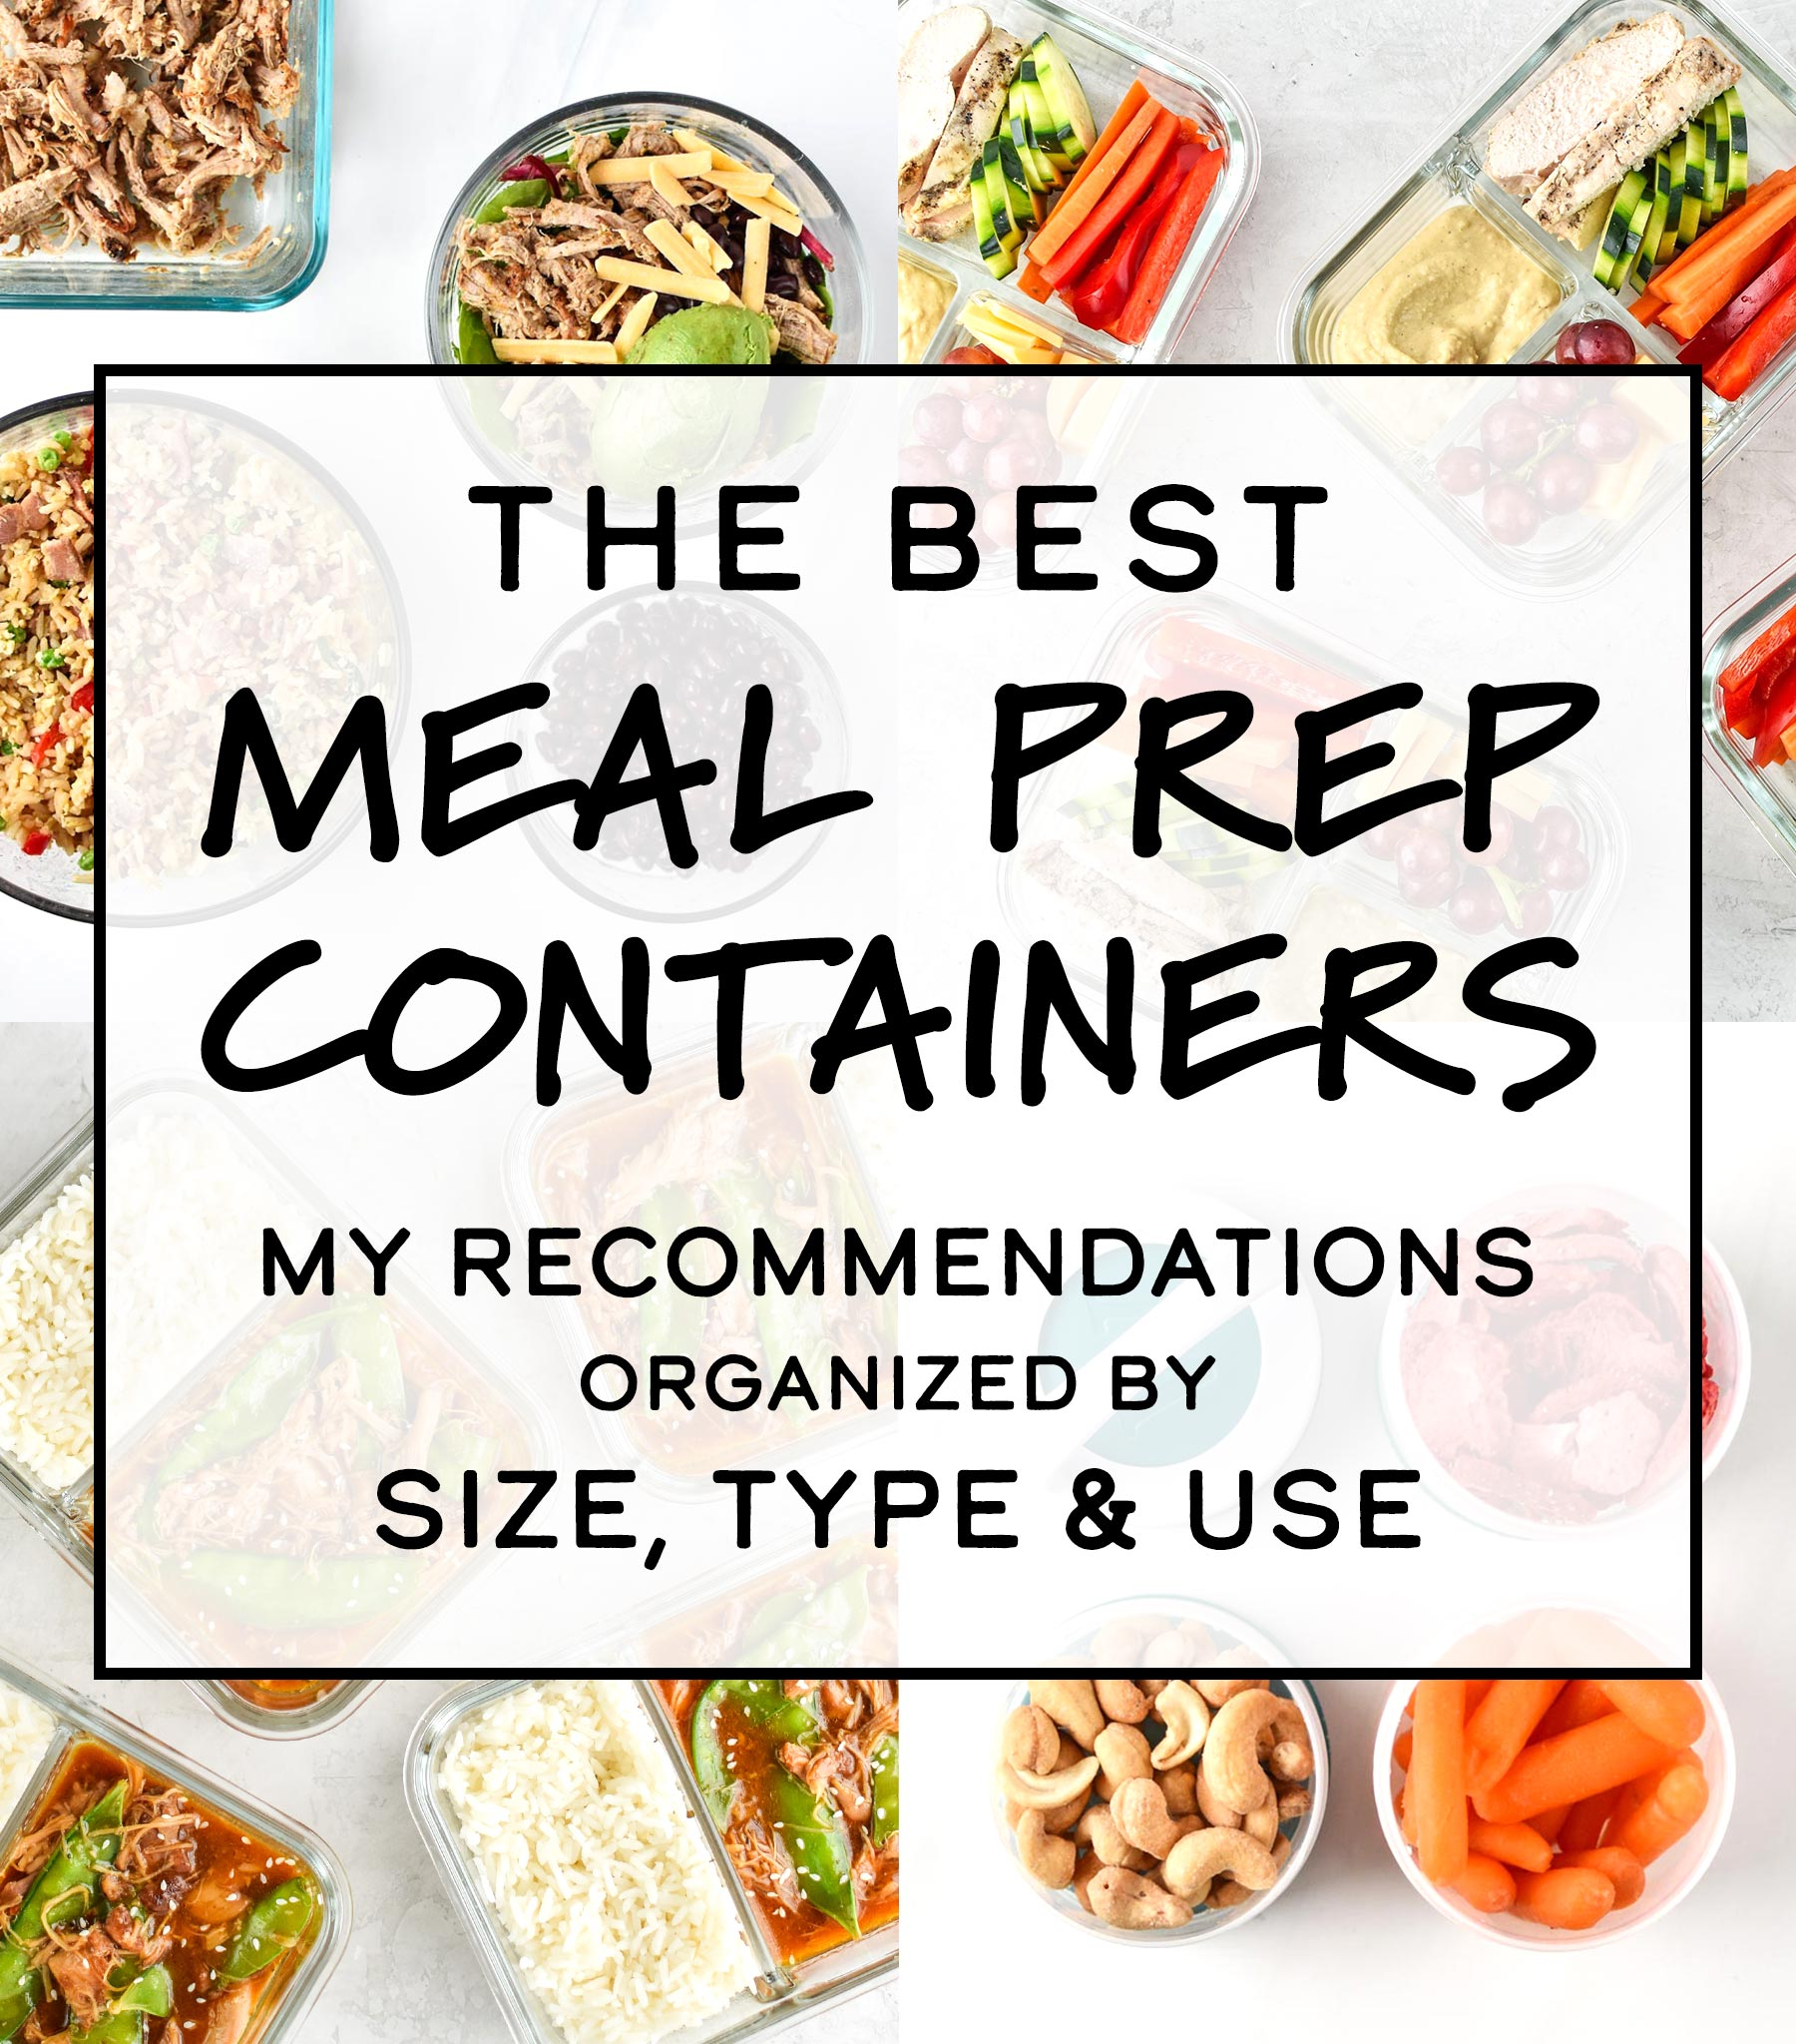 Best Meal Prep Containers 2019 The Best Meal Prep Containers By Size, Type & Use   Project Meal Plan